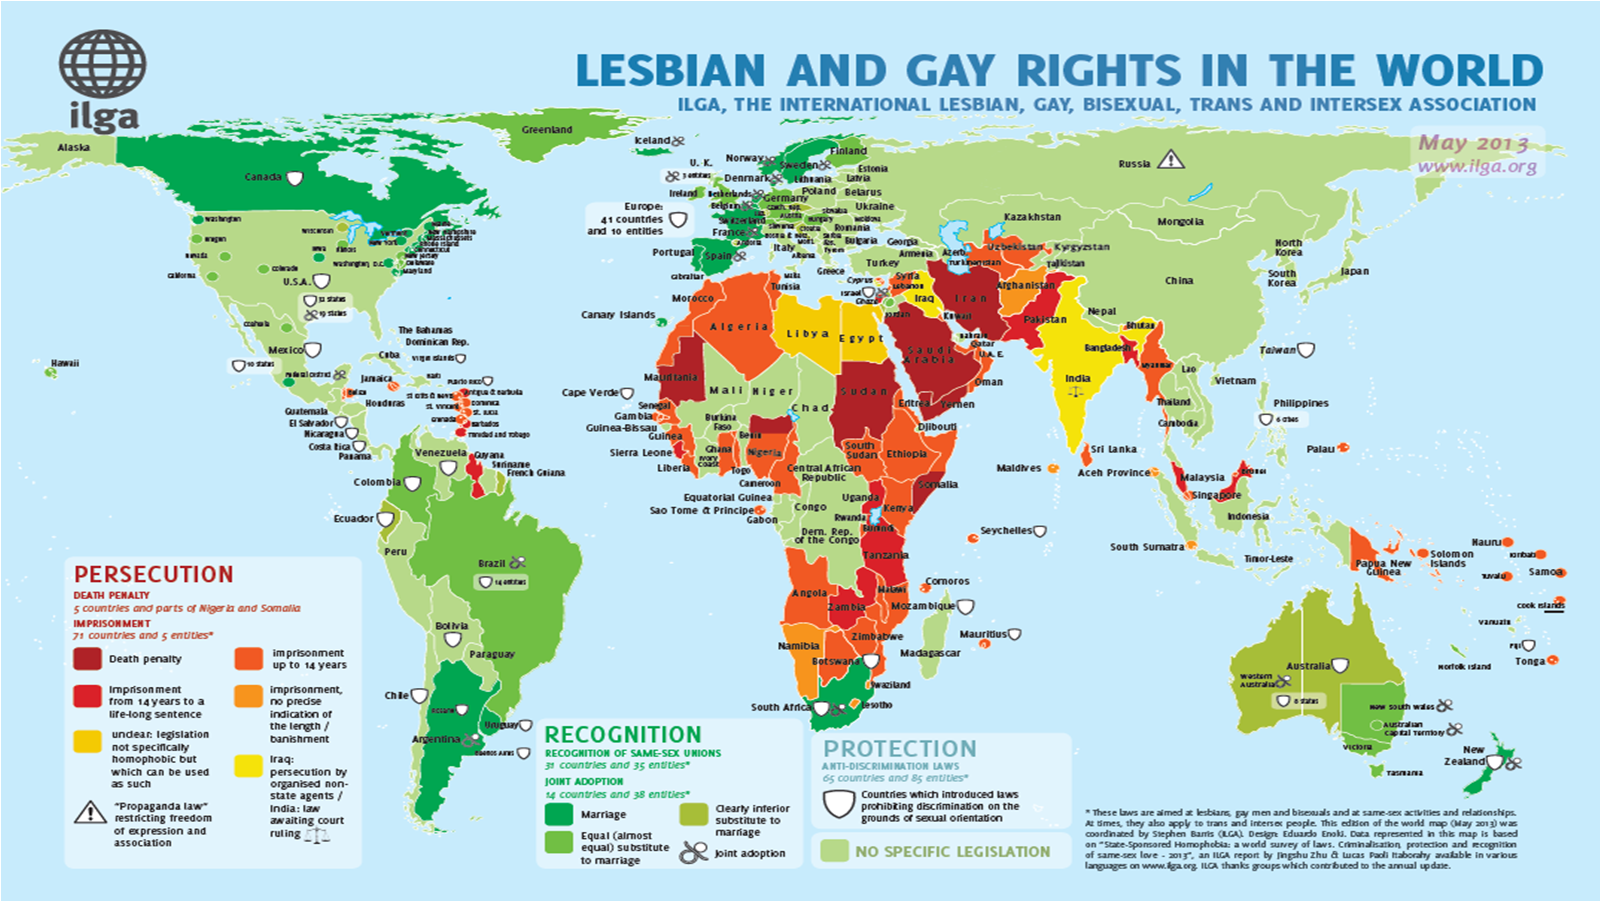 Countries criminalise homosexuality